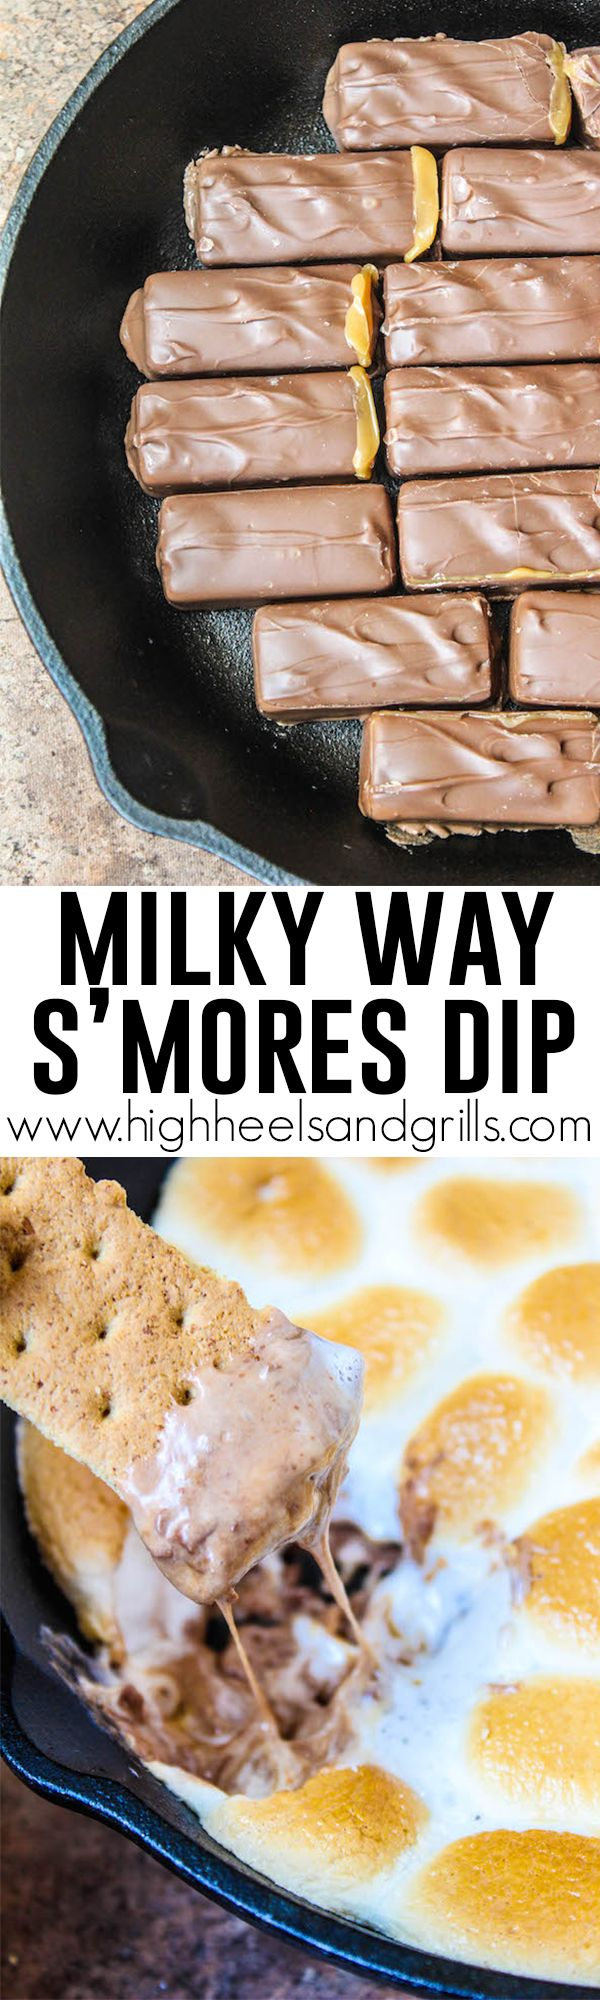 Milky Way S'mores Dip - If you've never eaten s'mores dip, you have to start with this one!